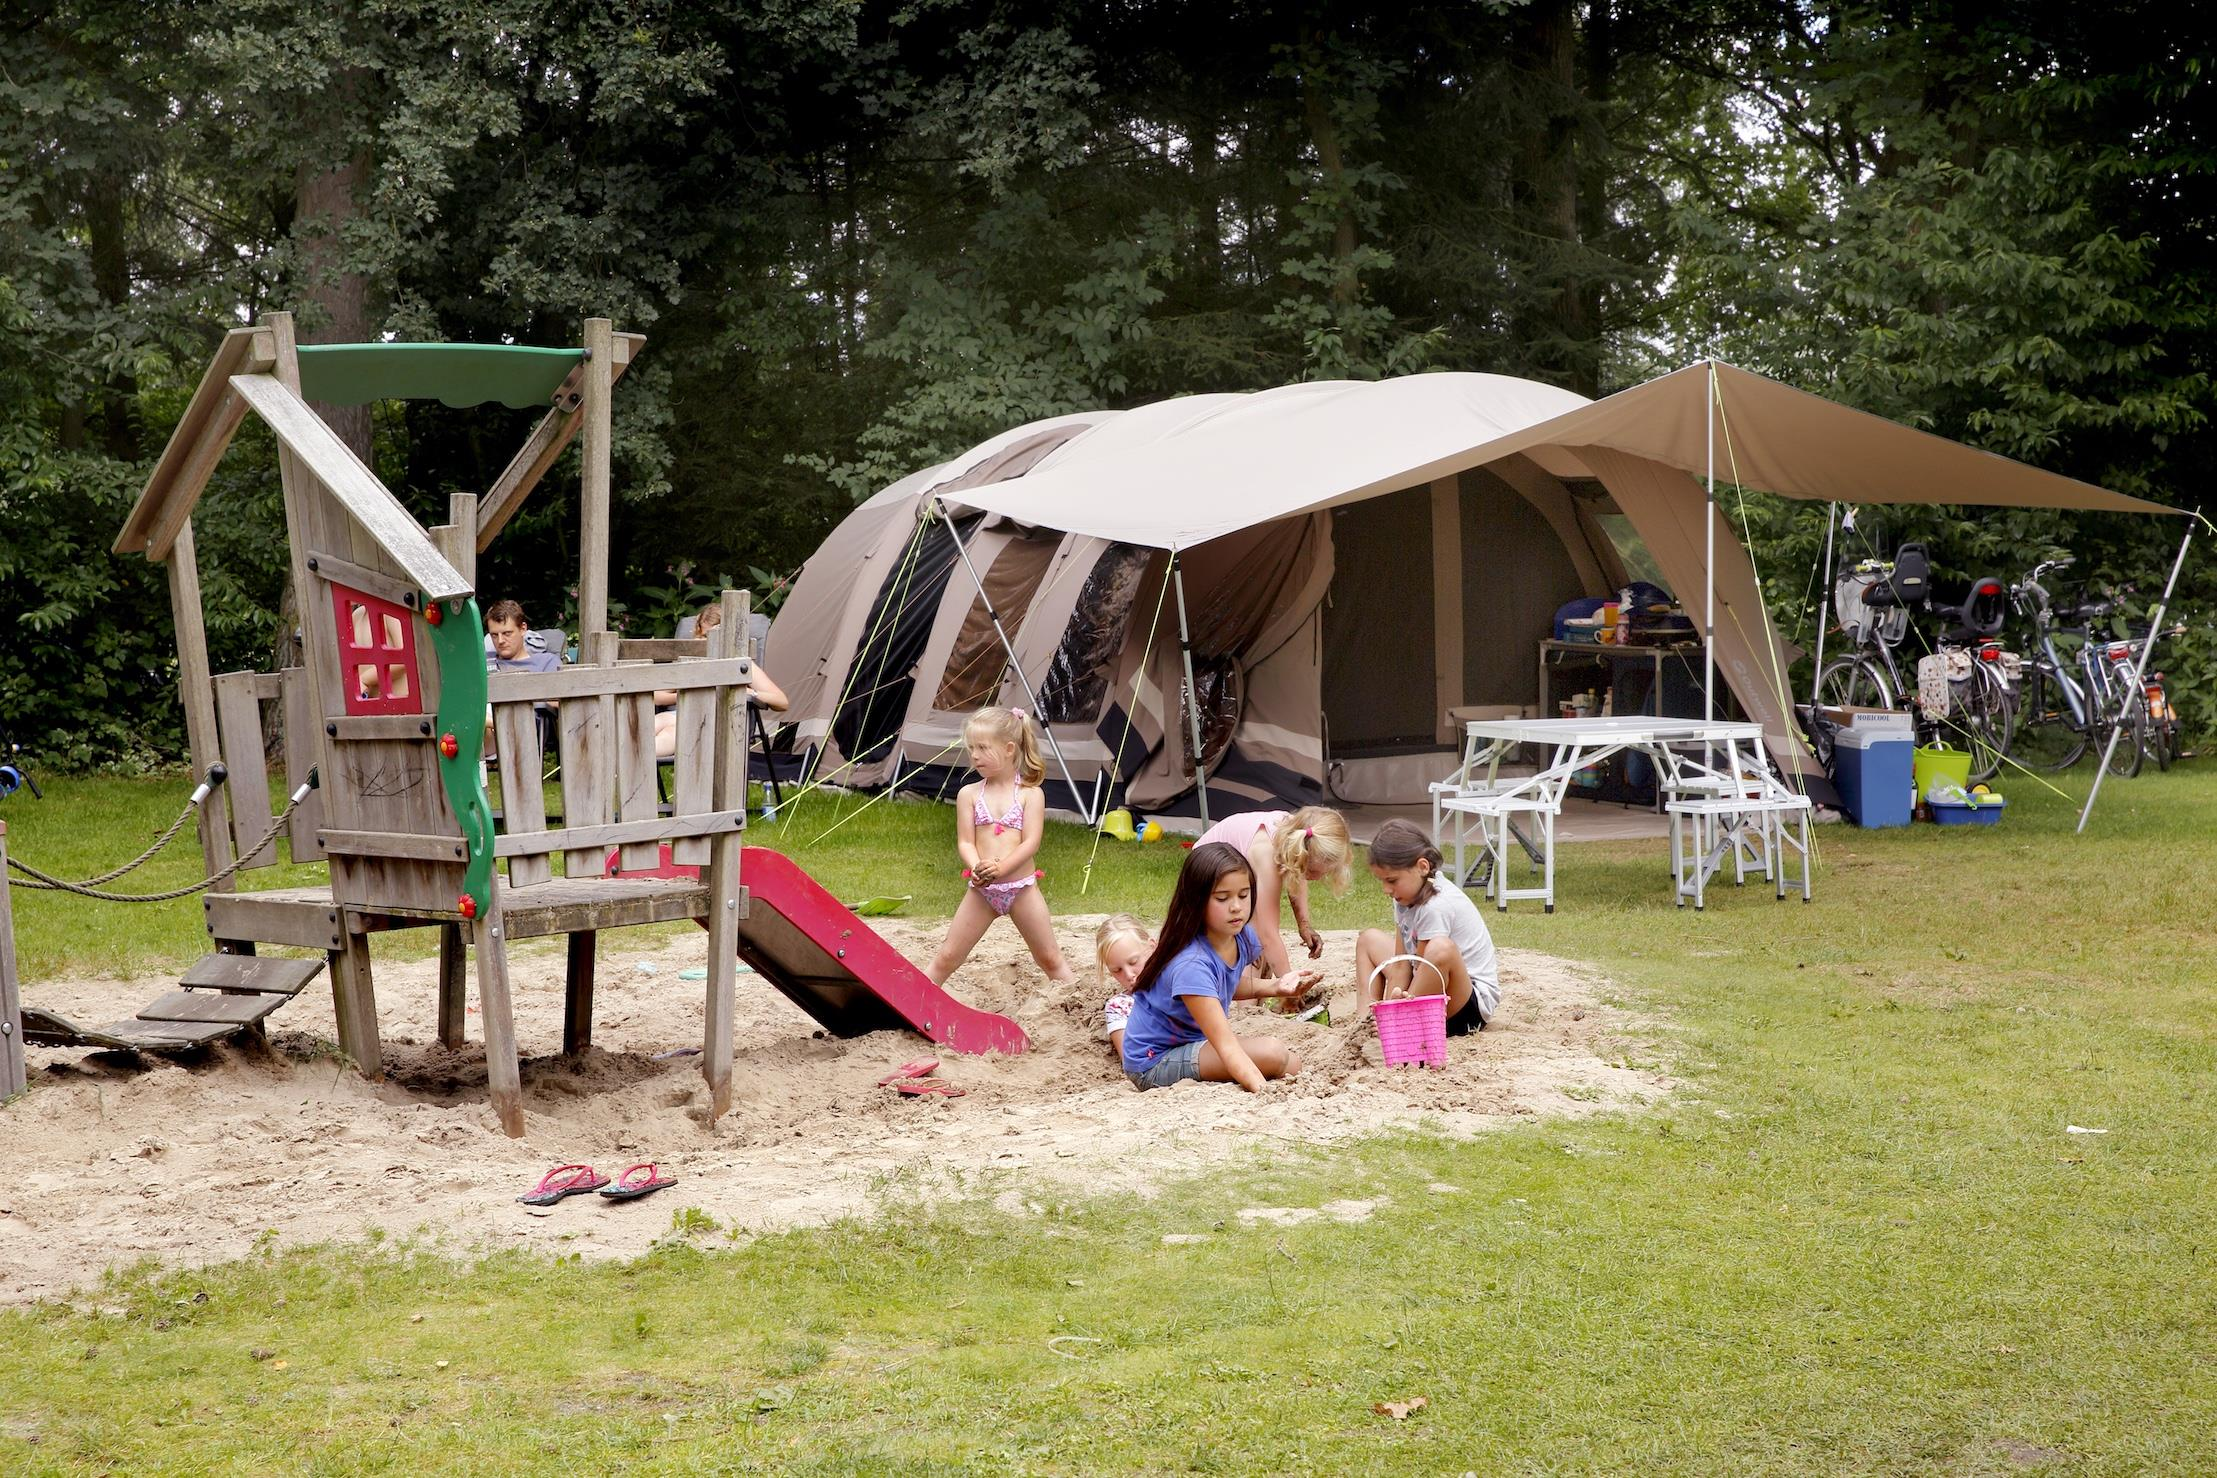 Establishment Camping de Wildhoeve - Emst